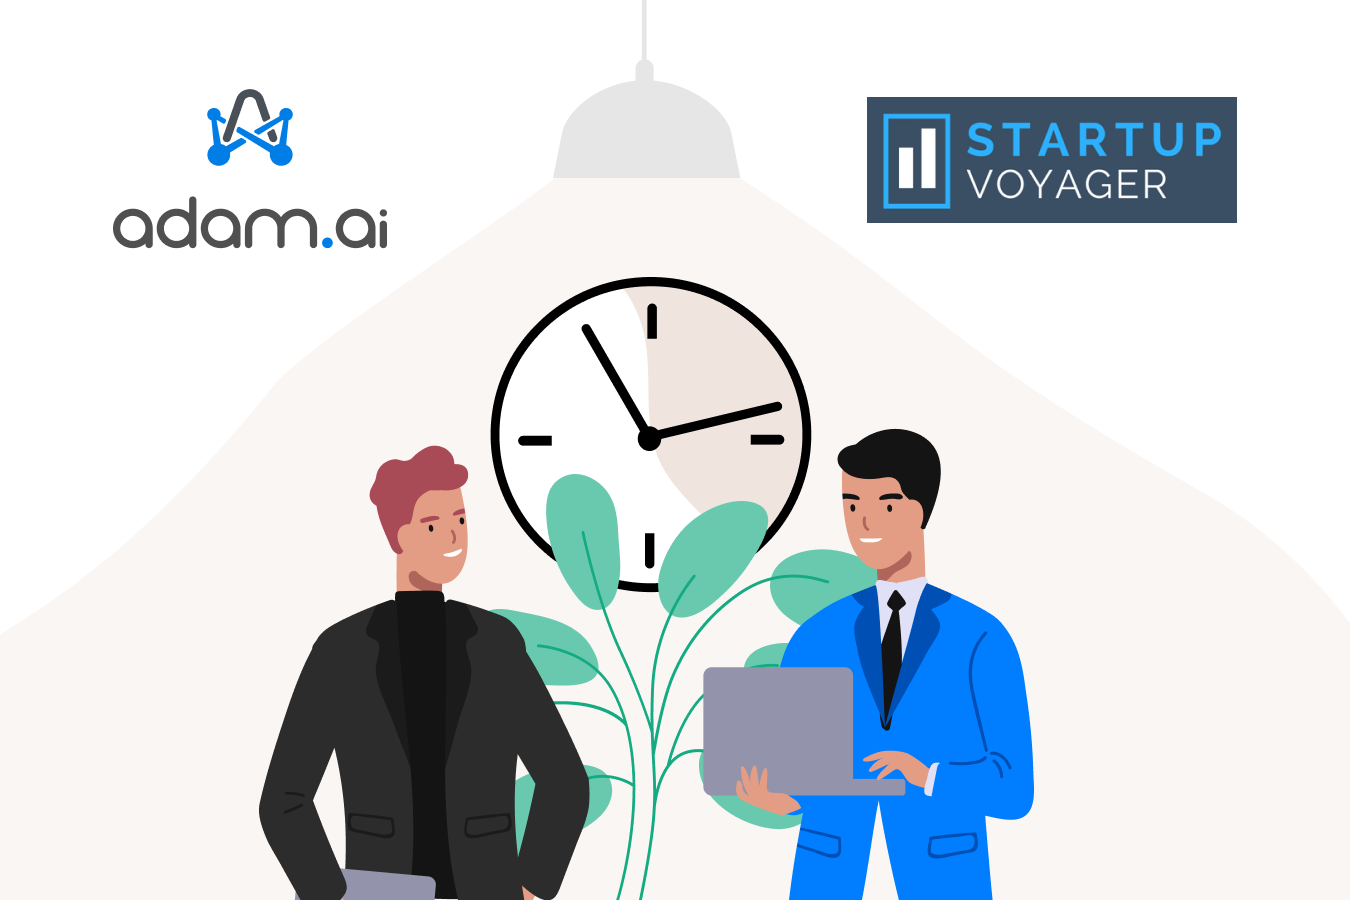 Startup voyager and adam.ai case study